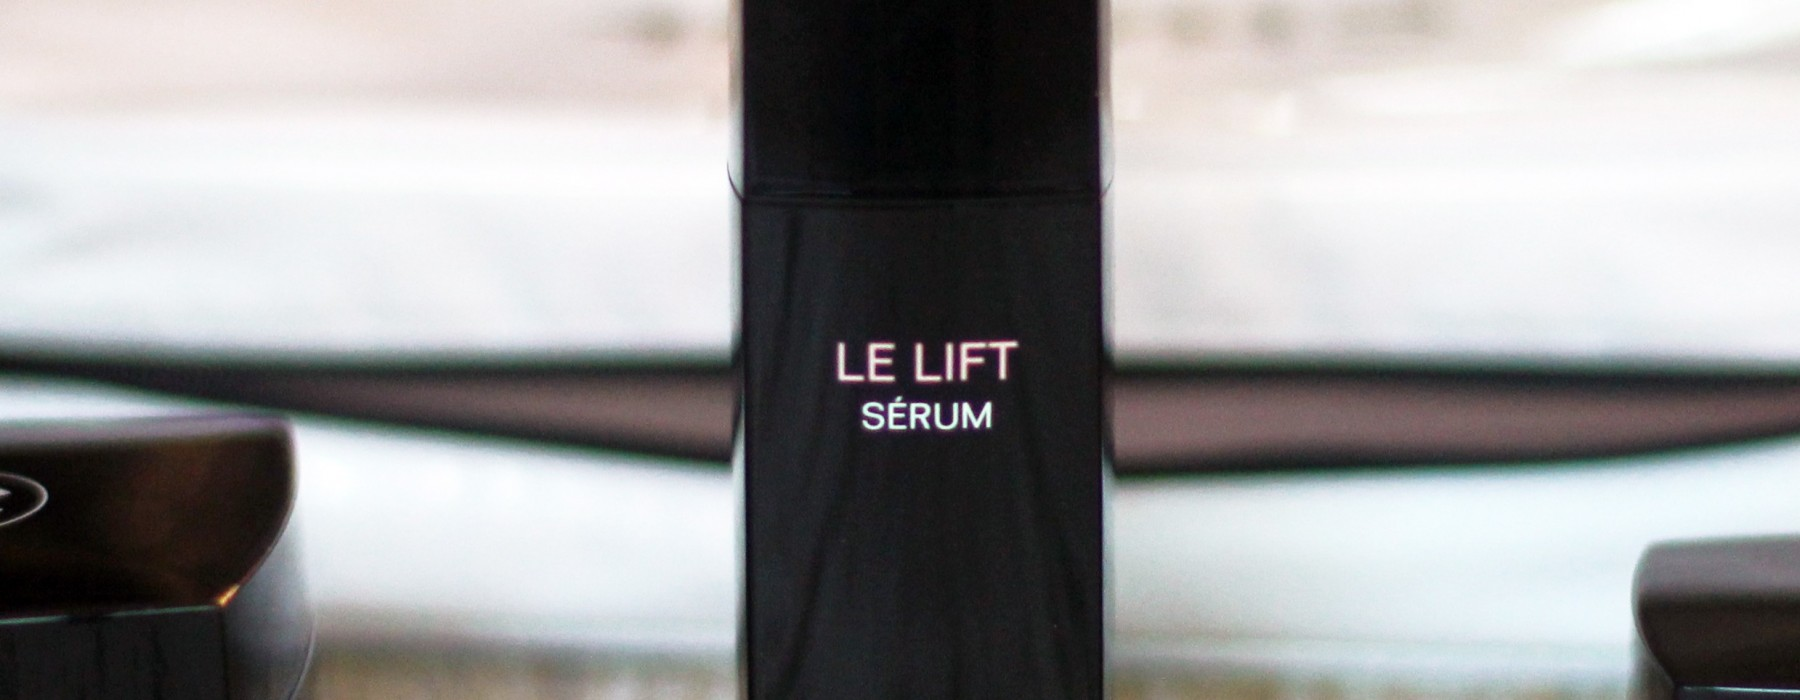 Skincare: Chanel Le Lift